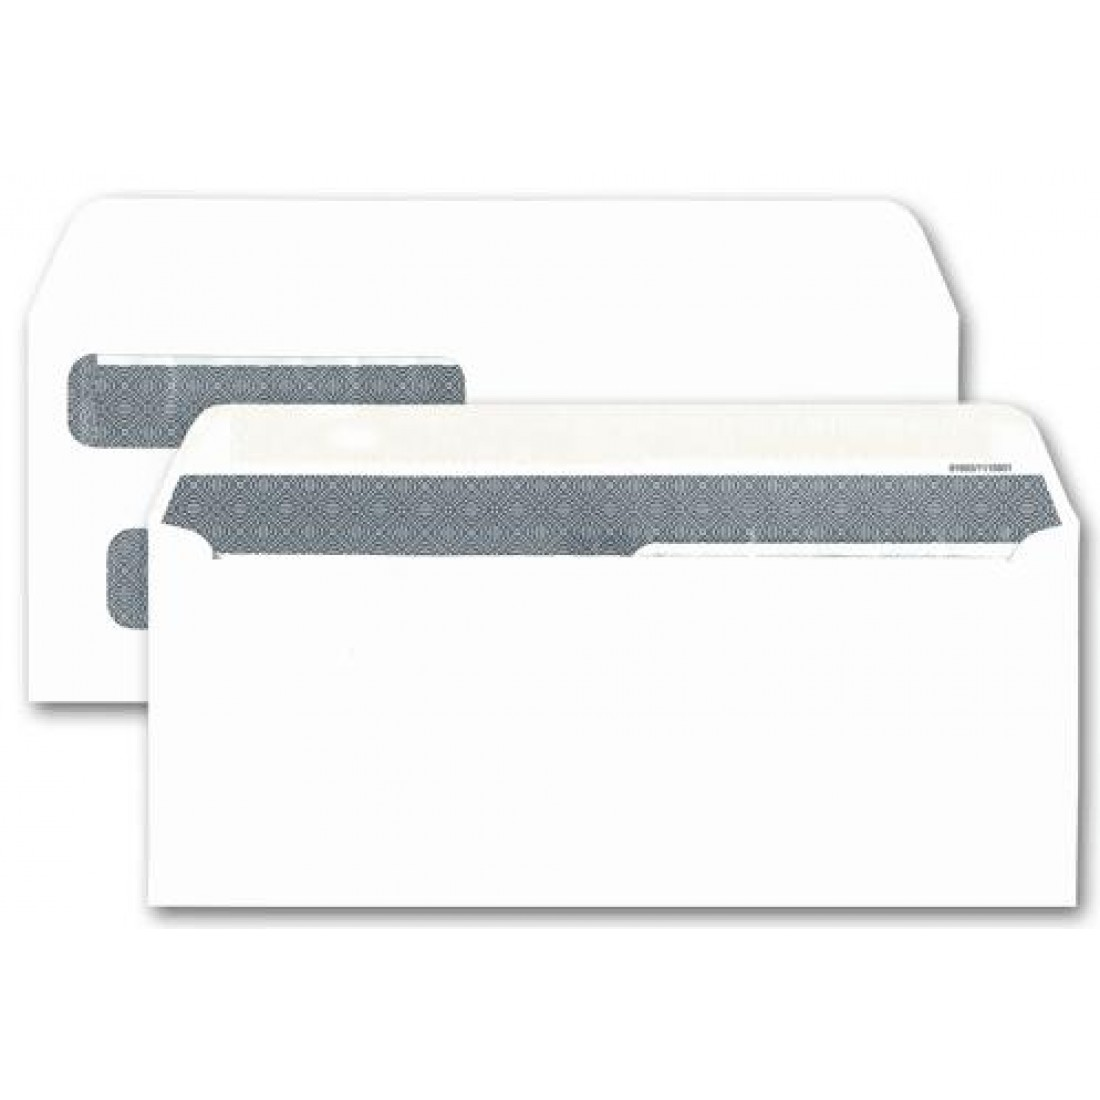 Double Window Envelopes for Computer Checks compatible with QuickBooks